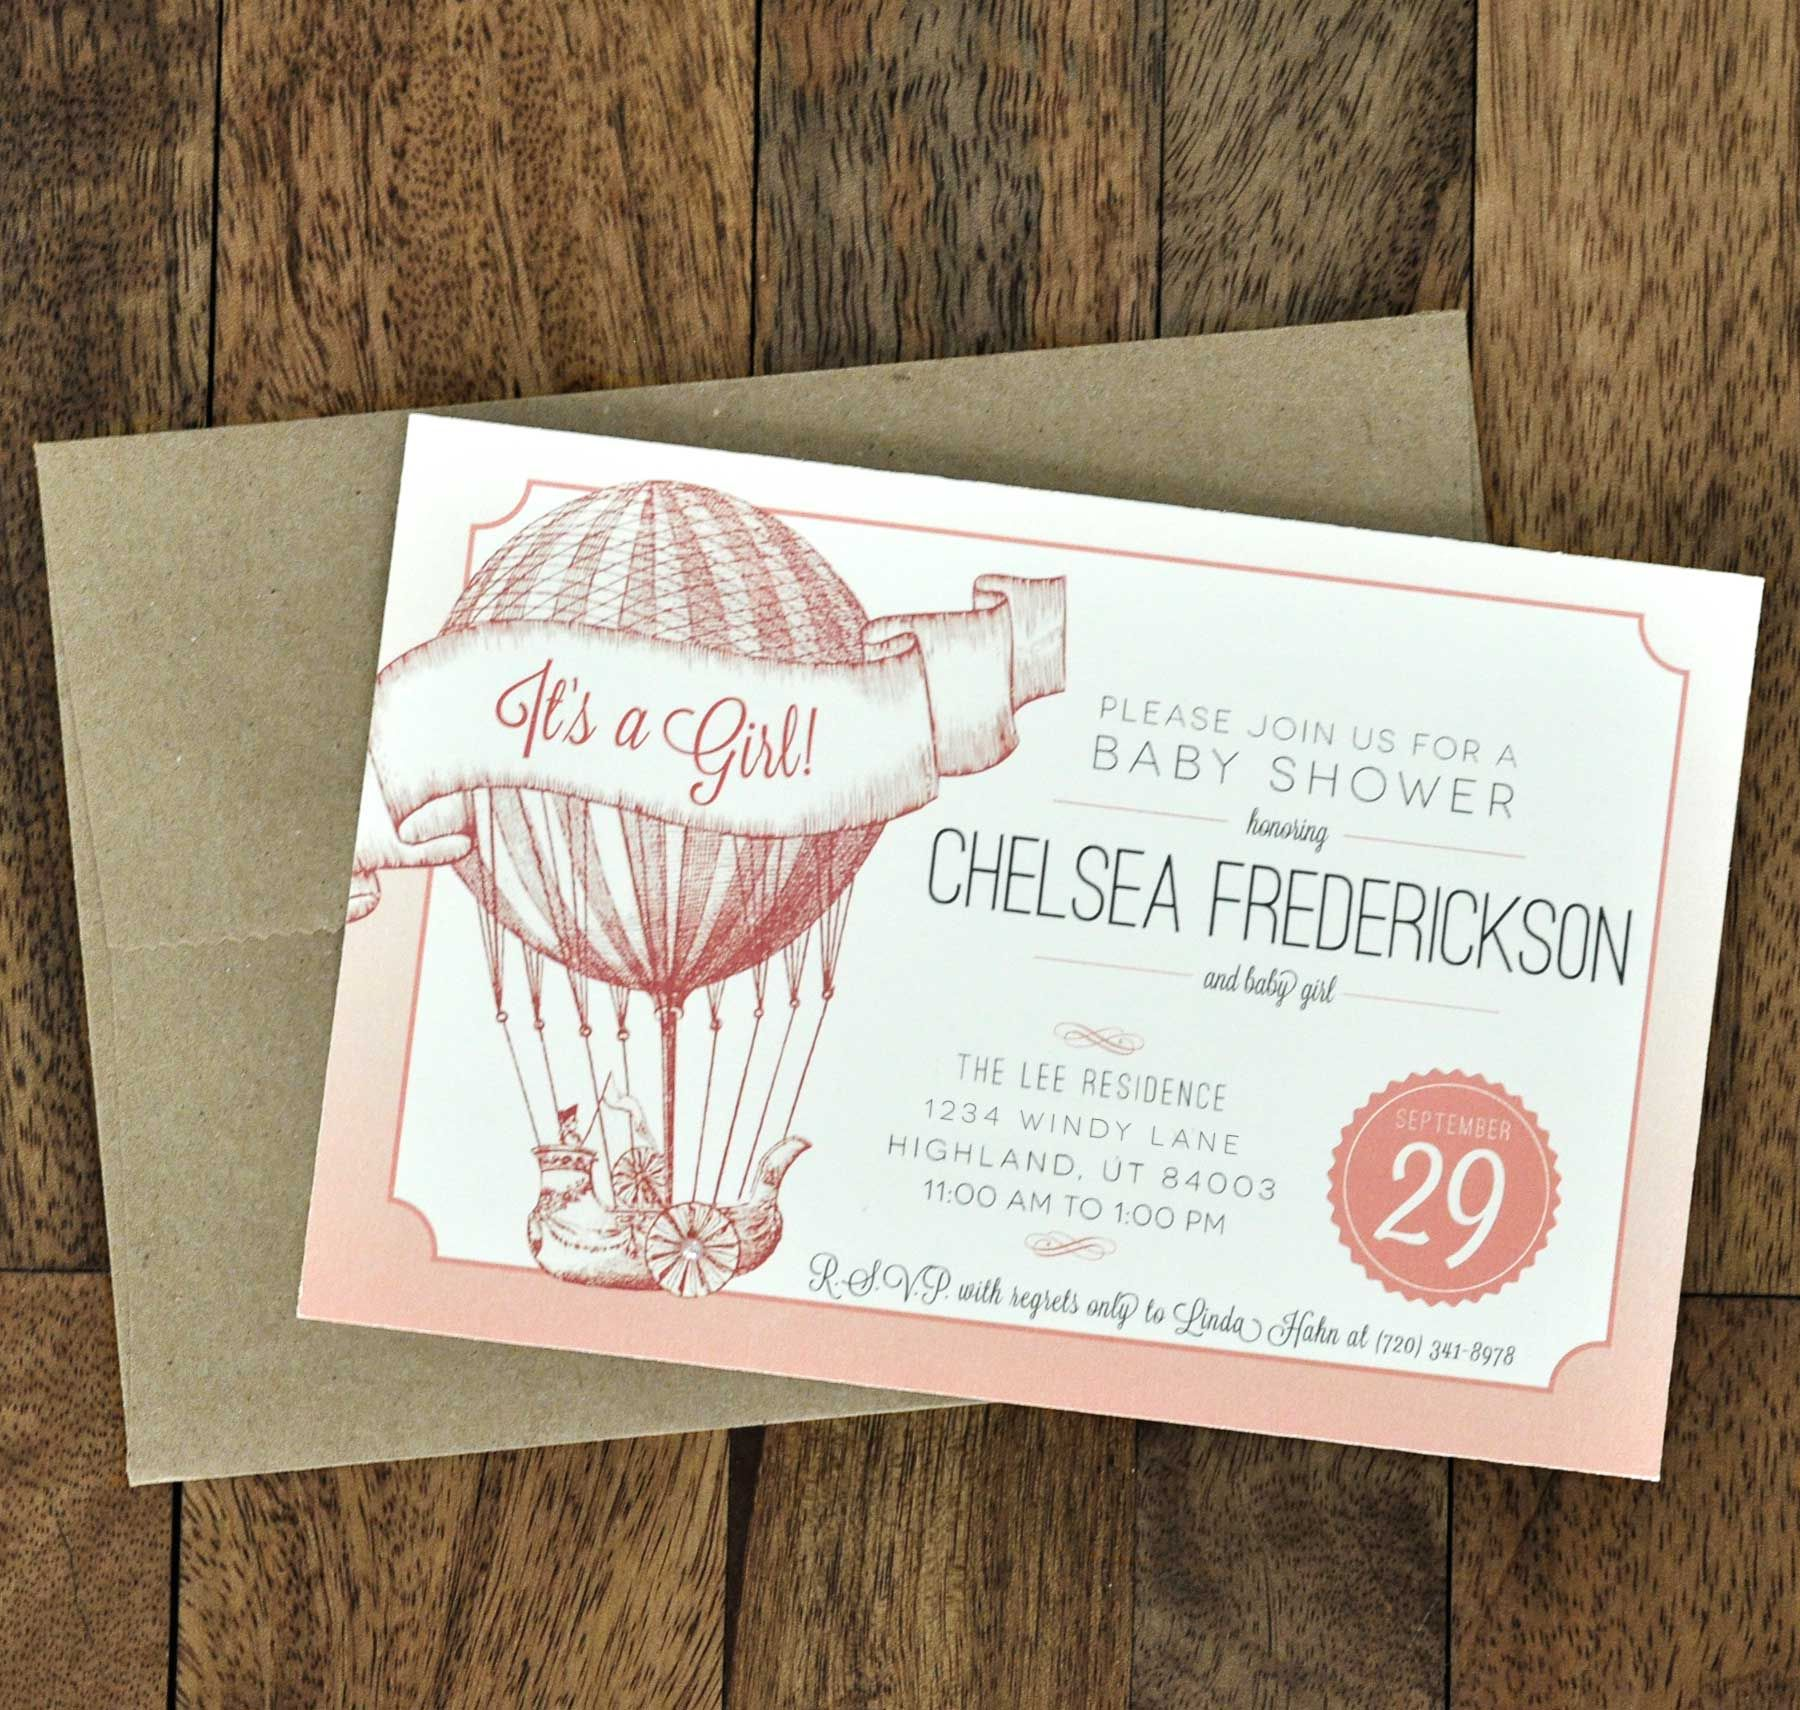 baby shower invitation vintage look - Google Search | Stationary ...